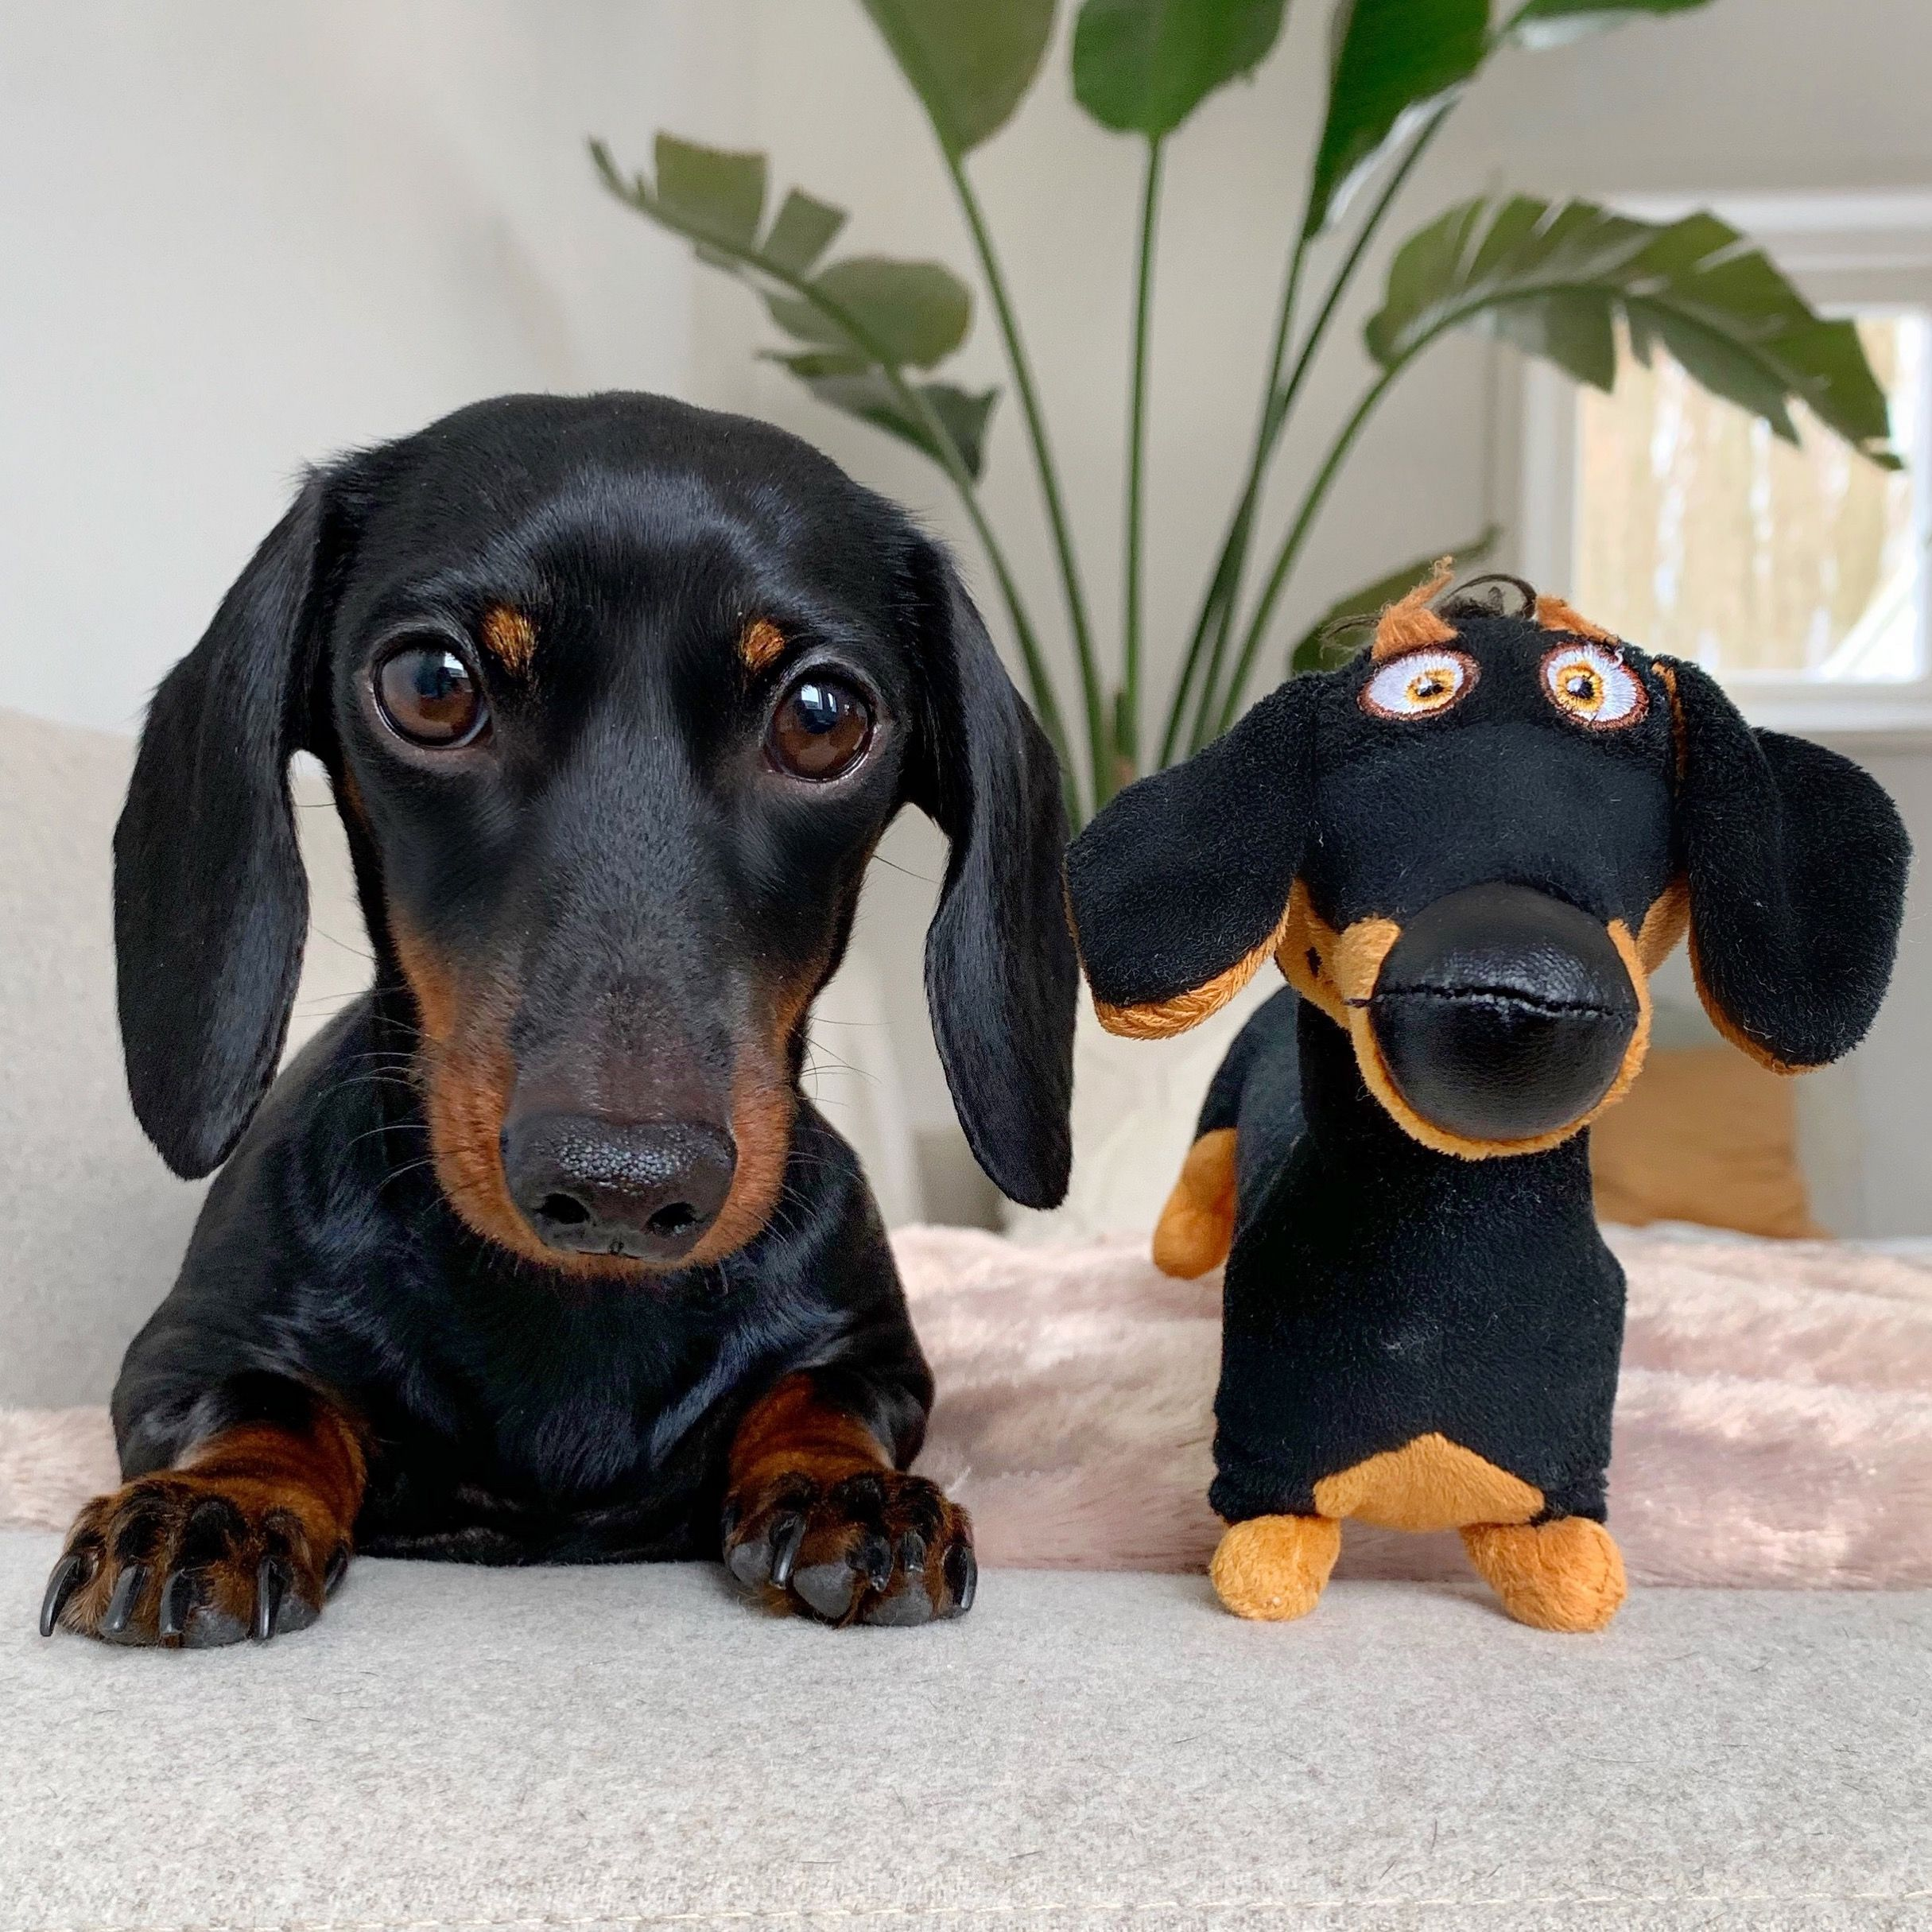 Pin On Dachshunds Rule